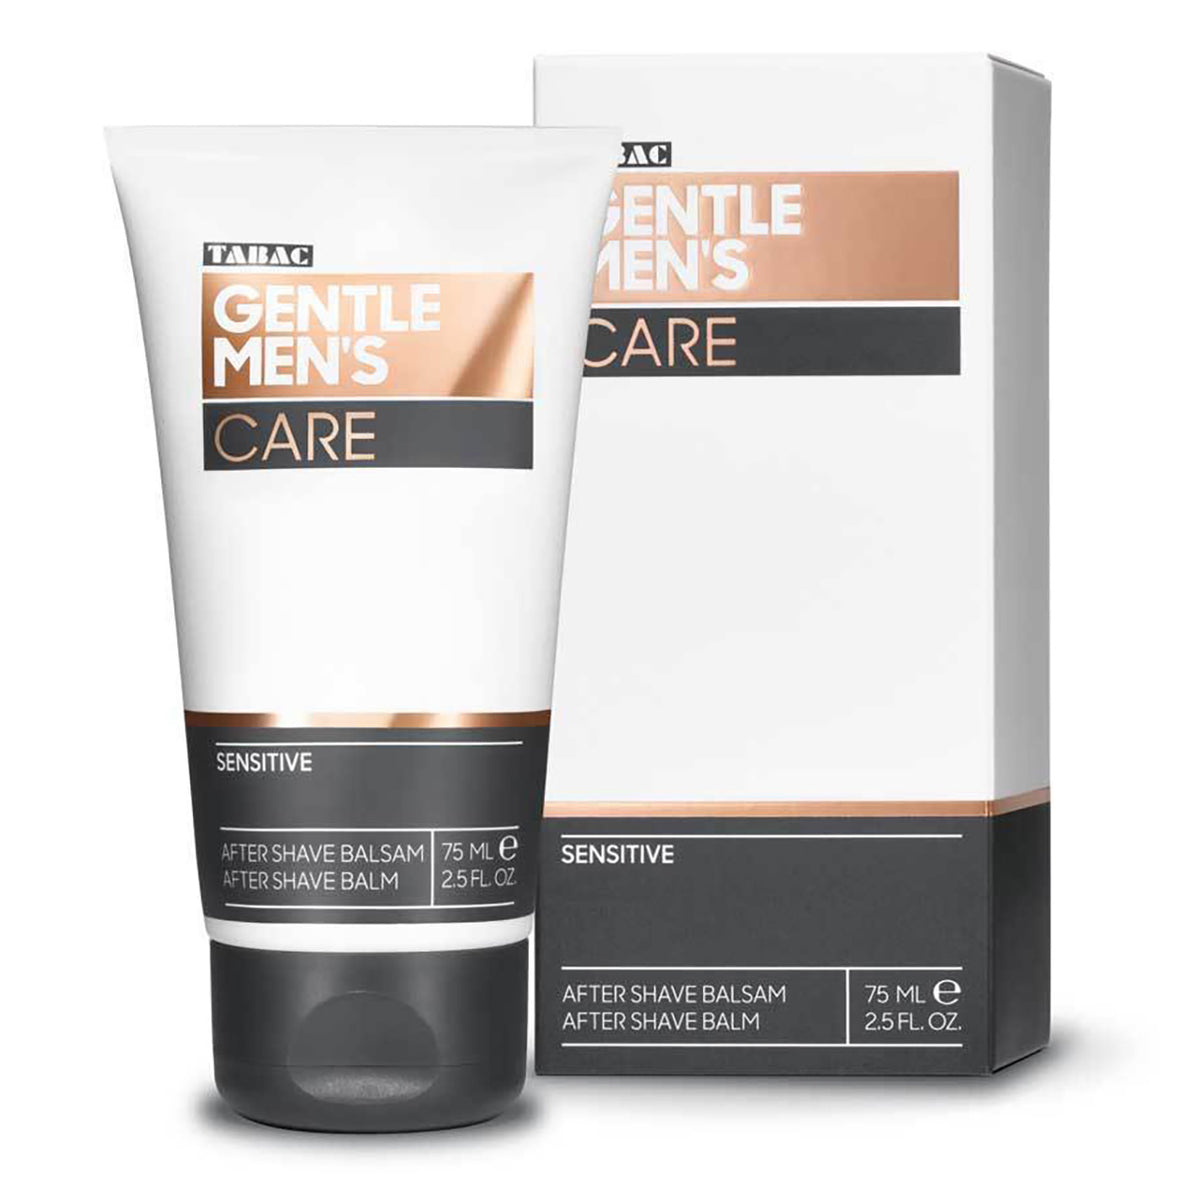 Tabac Gentle Men's Care After Shave Balm 75ml